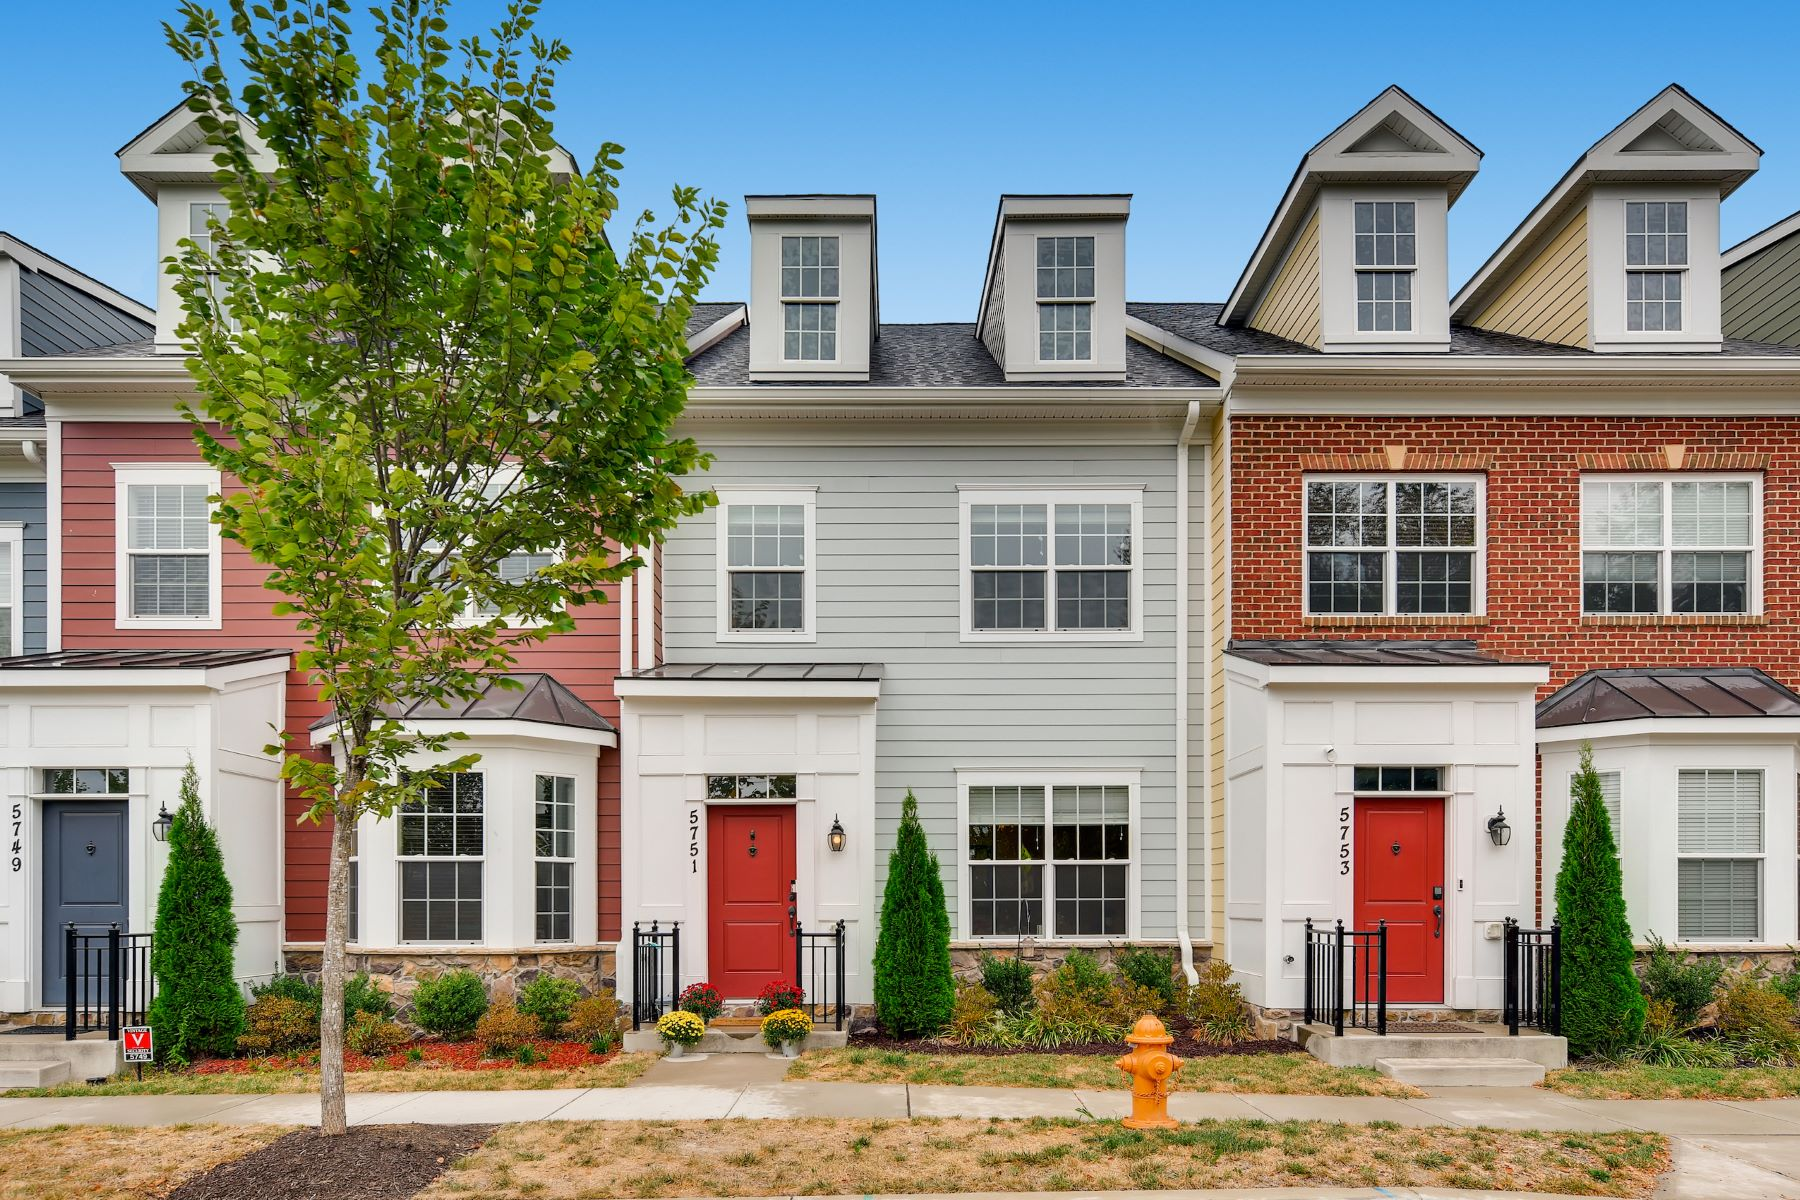 townhouses for Sale at Shipleys Grant 5751 Richards Valley Road Ellicott City, Maryland 21043 United States